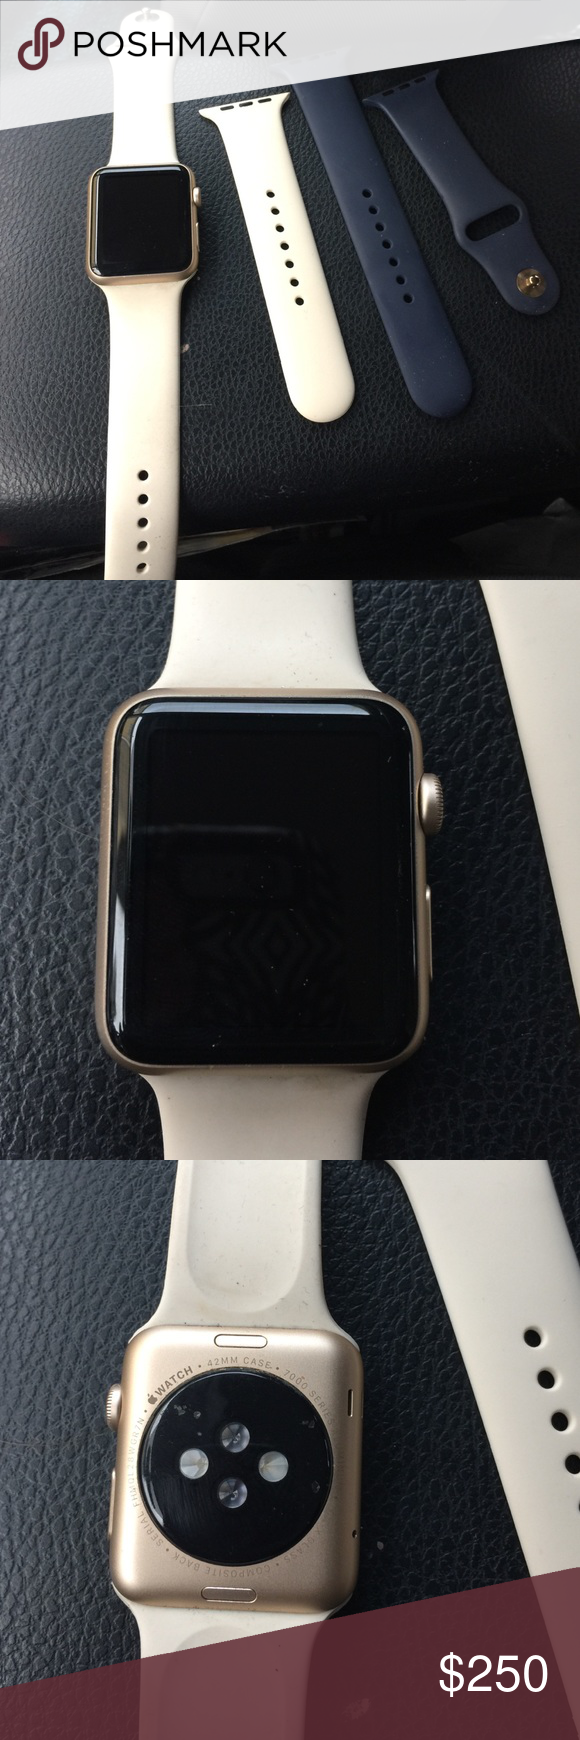 Brand new Apple Watch worn once Rose gold face 42mm Apple Watch with off white and navy blue bands with box Accessories Watches